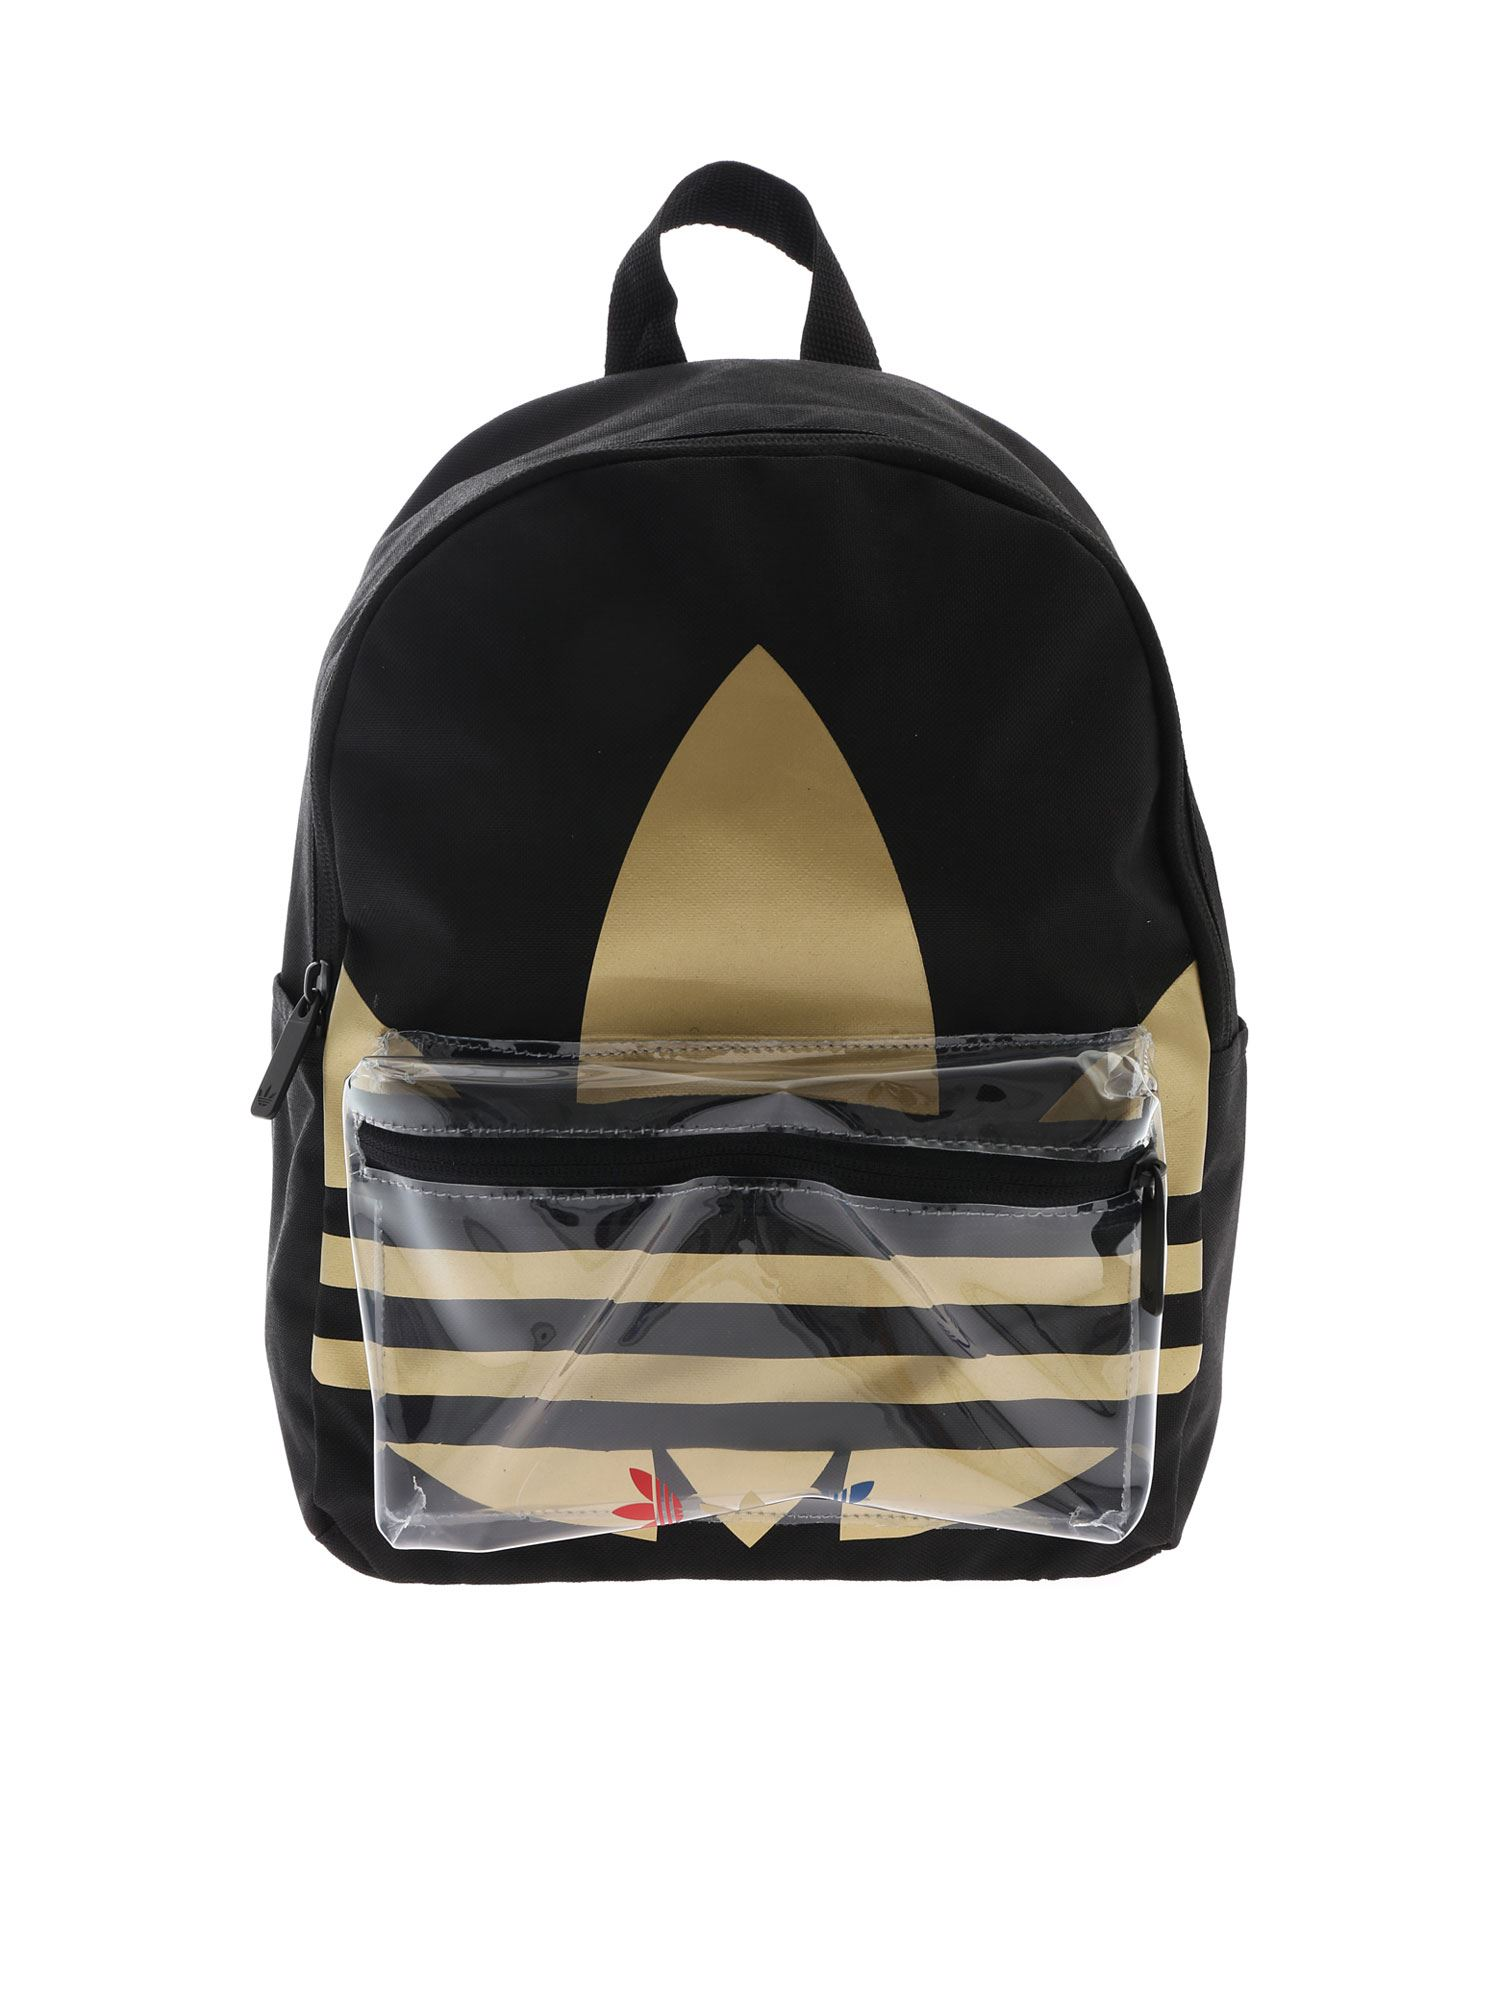 Adidas Originals ADIDAS ORIGINALS TREFOIL MINI BACKPACK IN BLACK